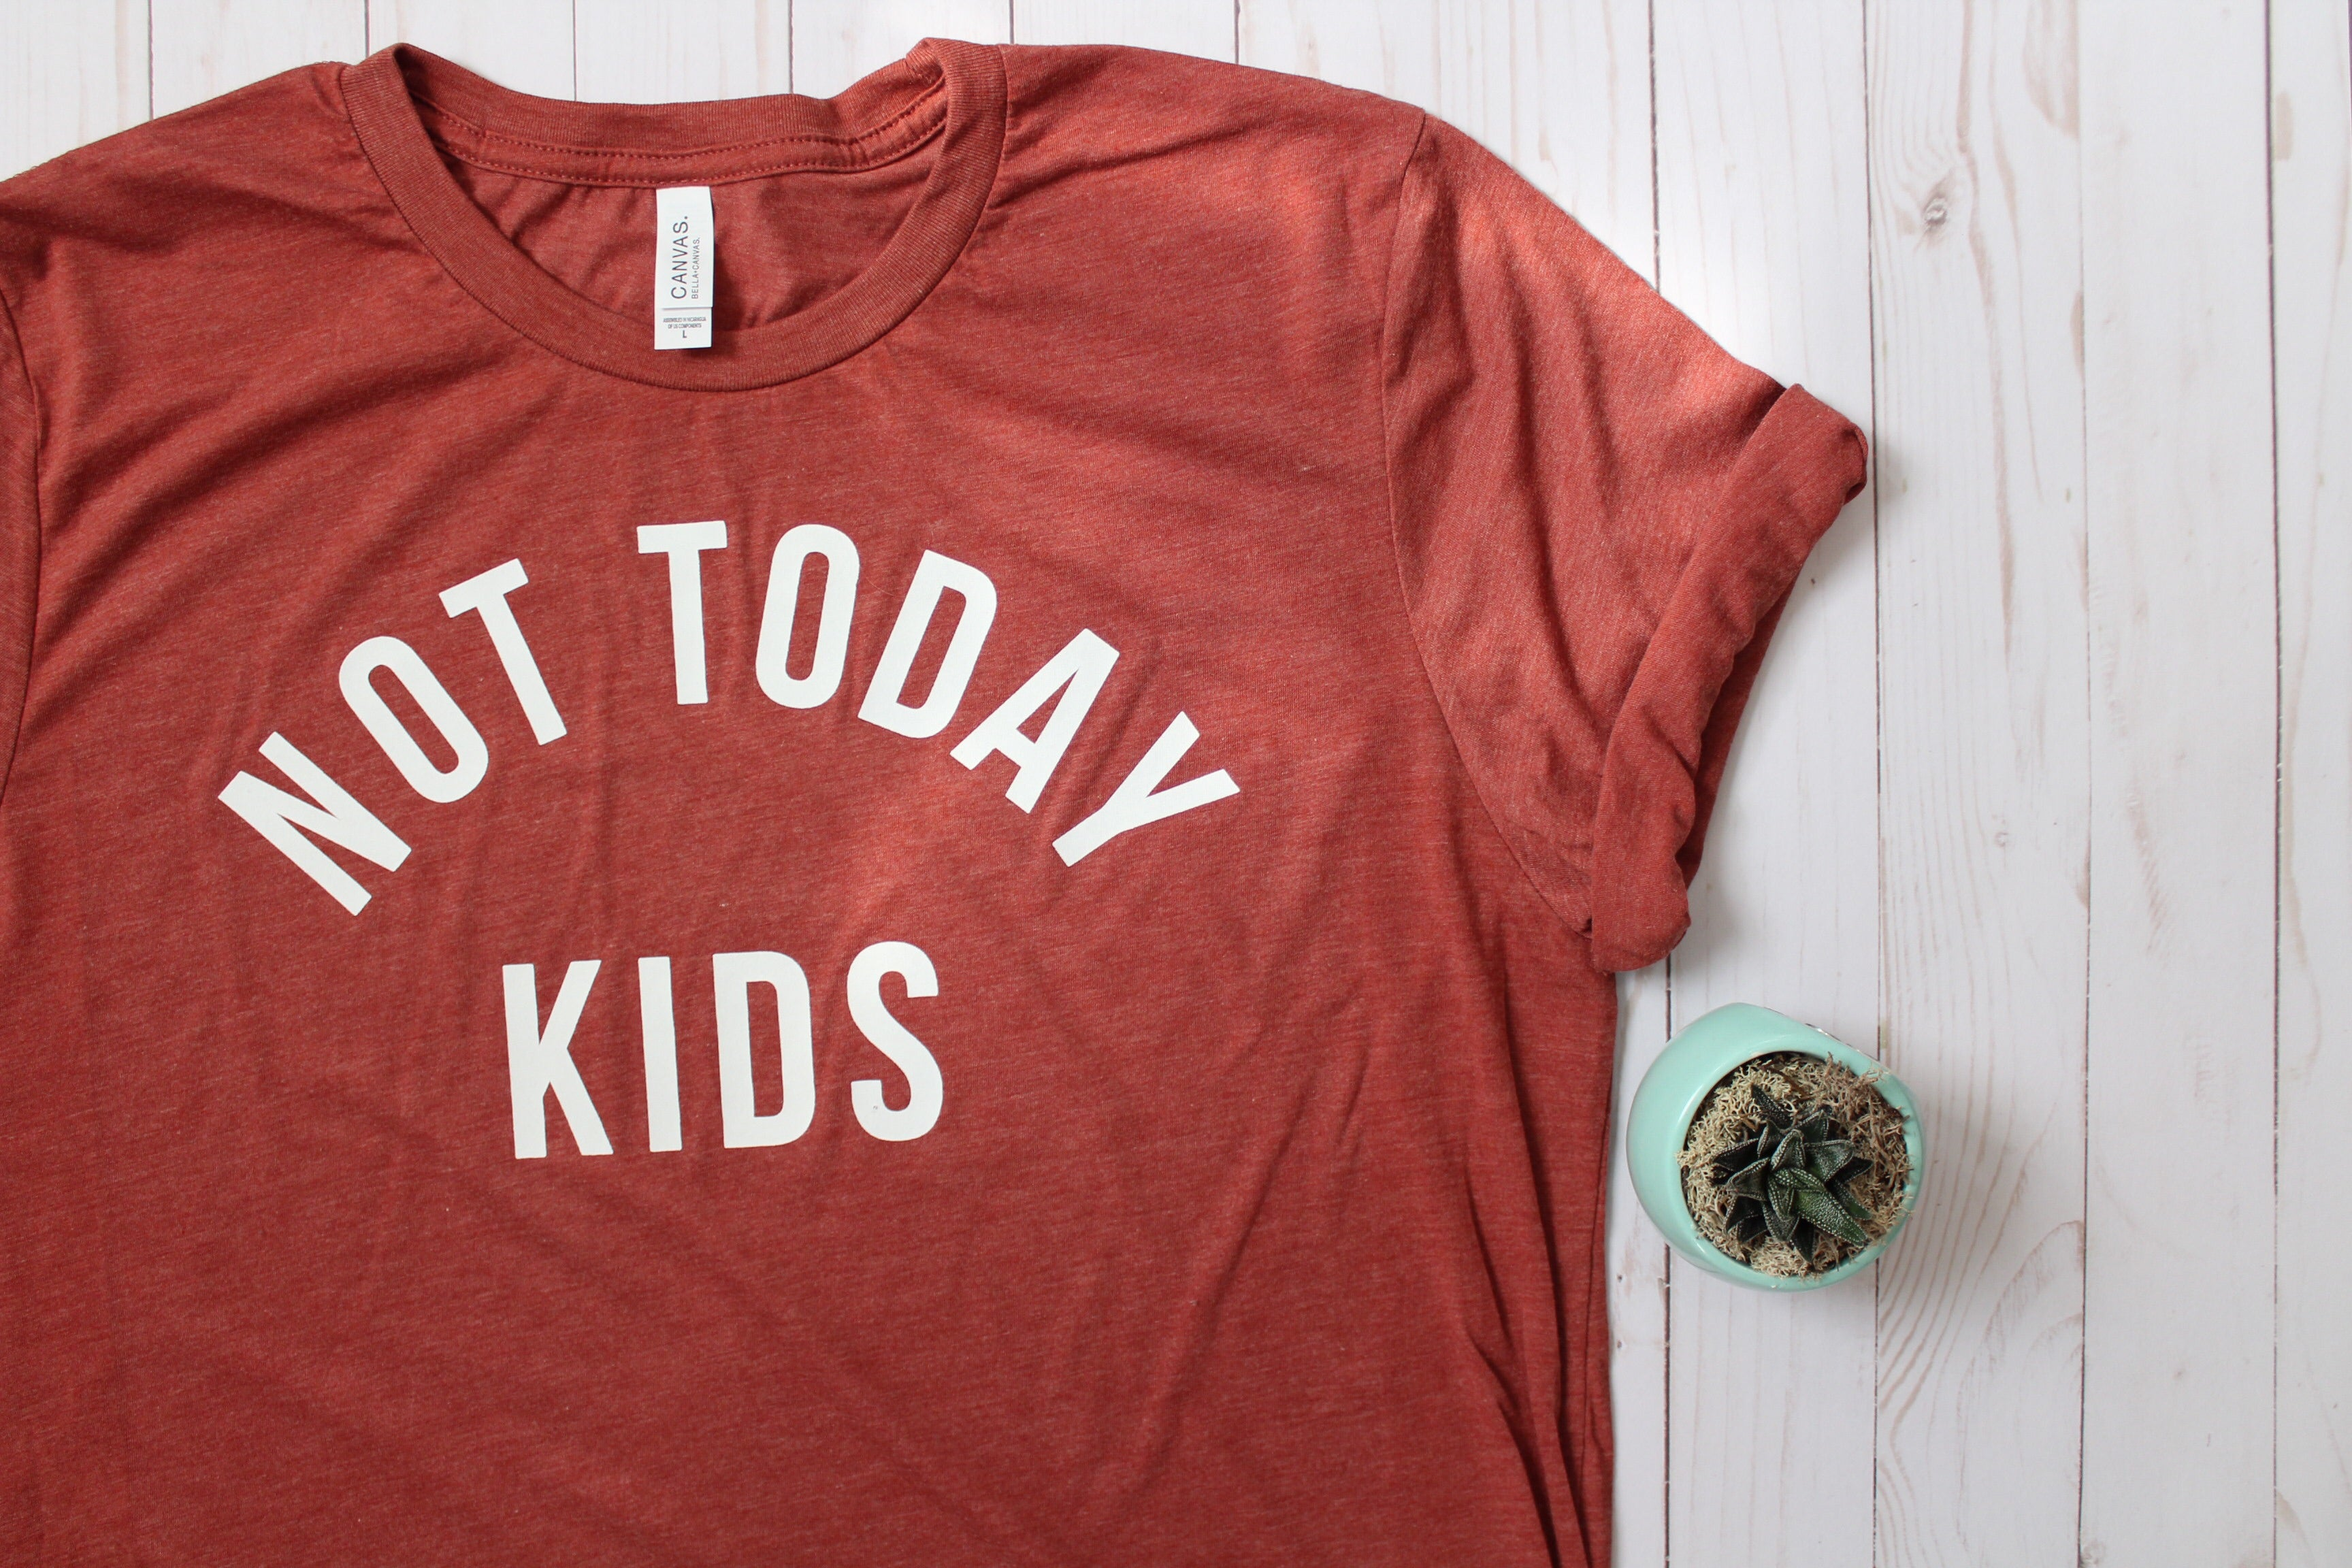 Not Today Kids tee